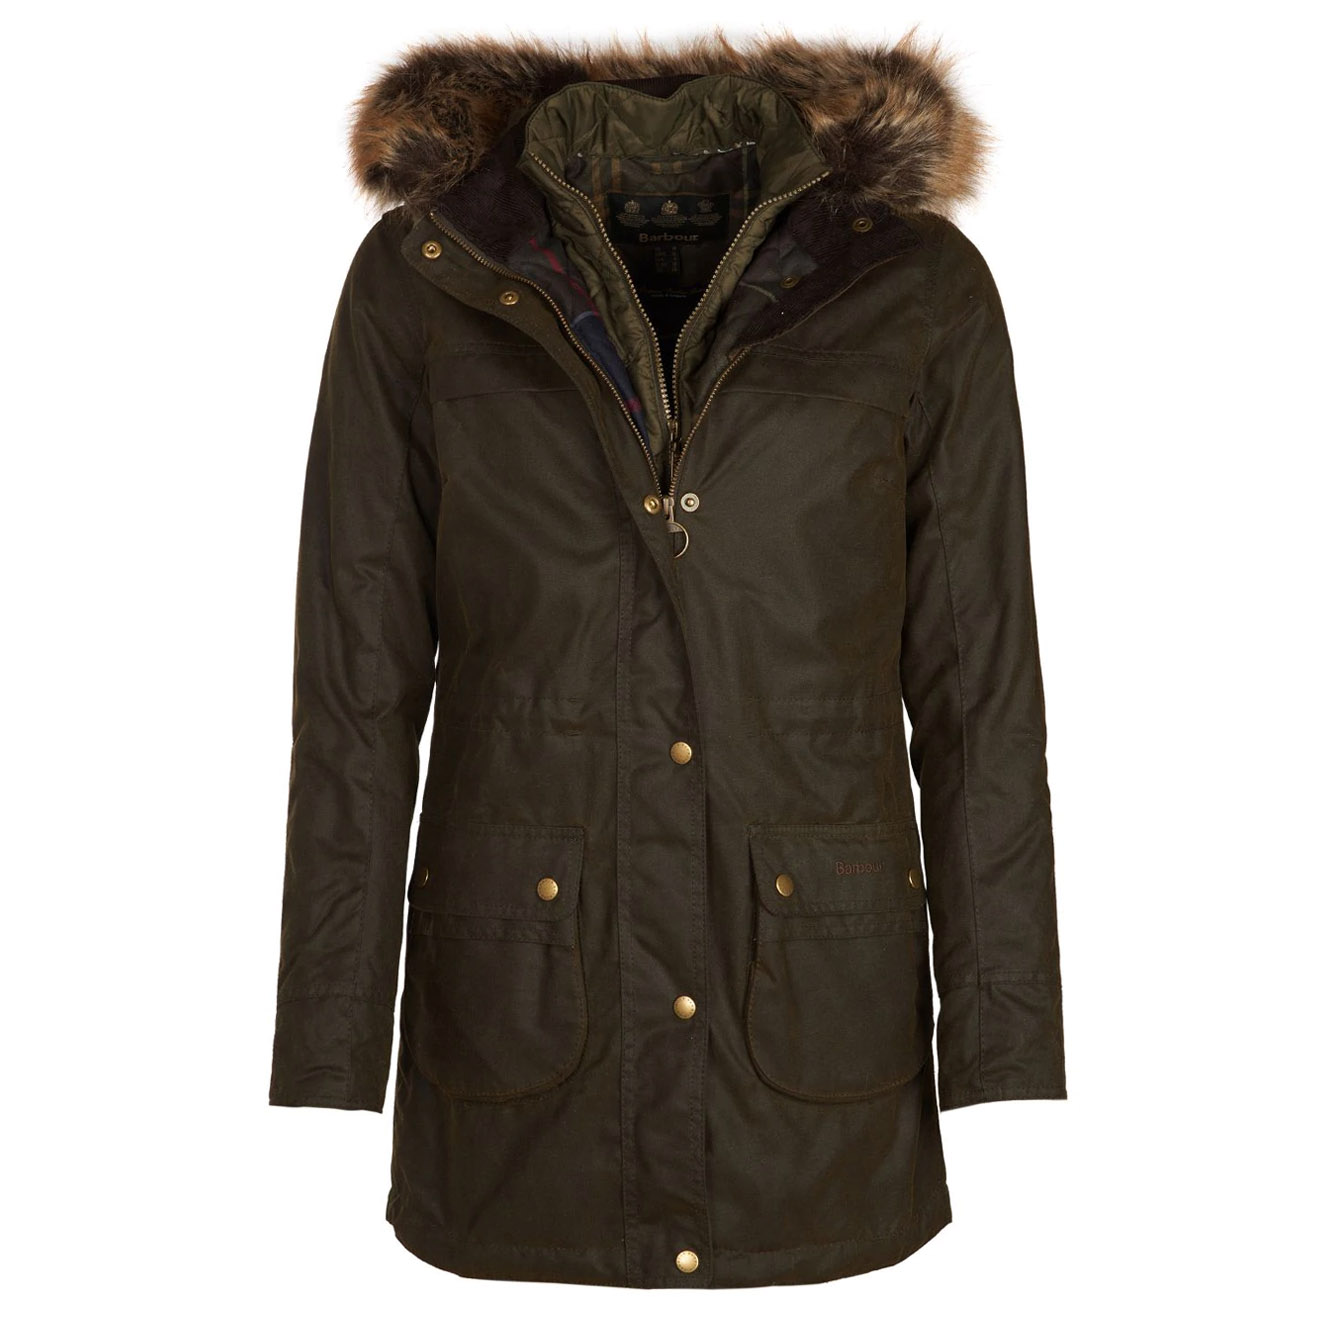 Barbour Womens Dartford Wax Jacket Olive The Sporting Lodge